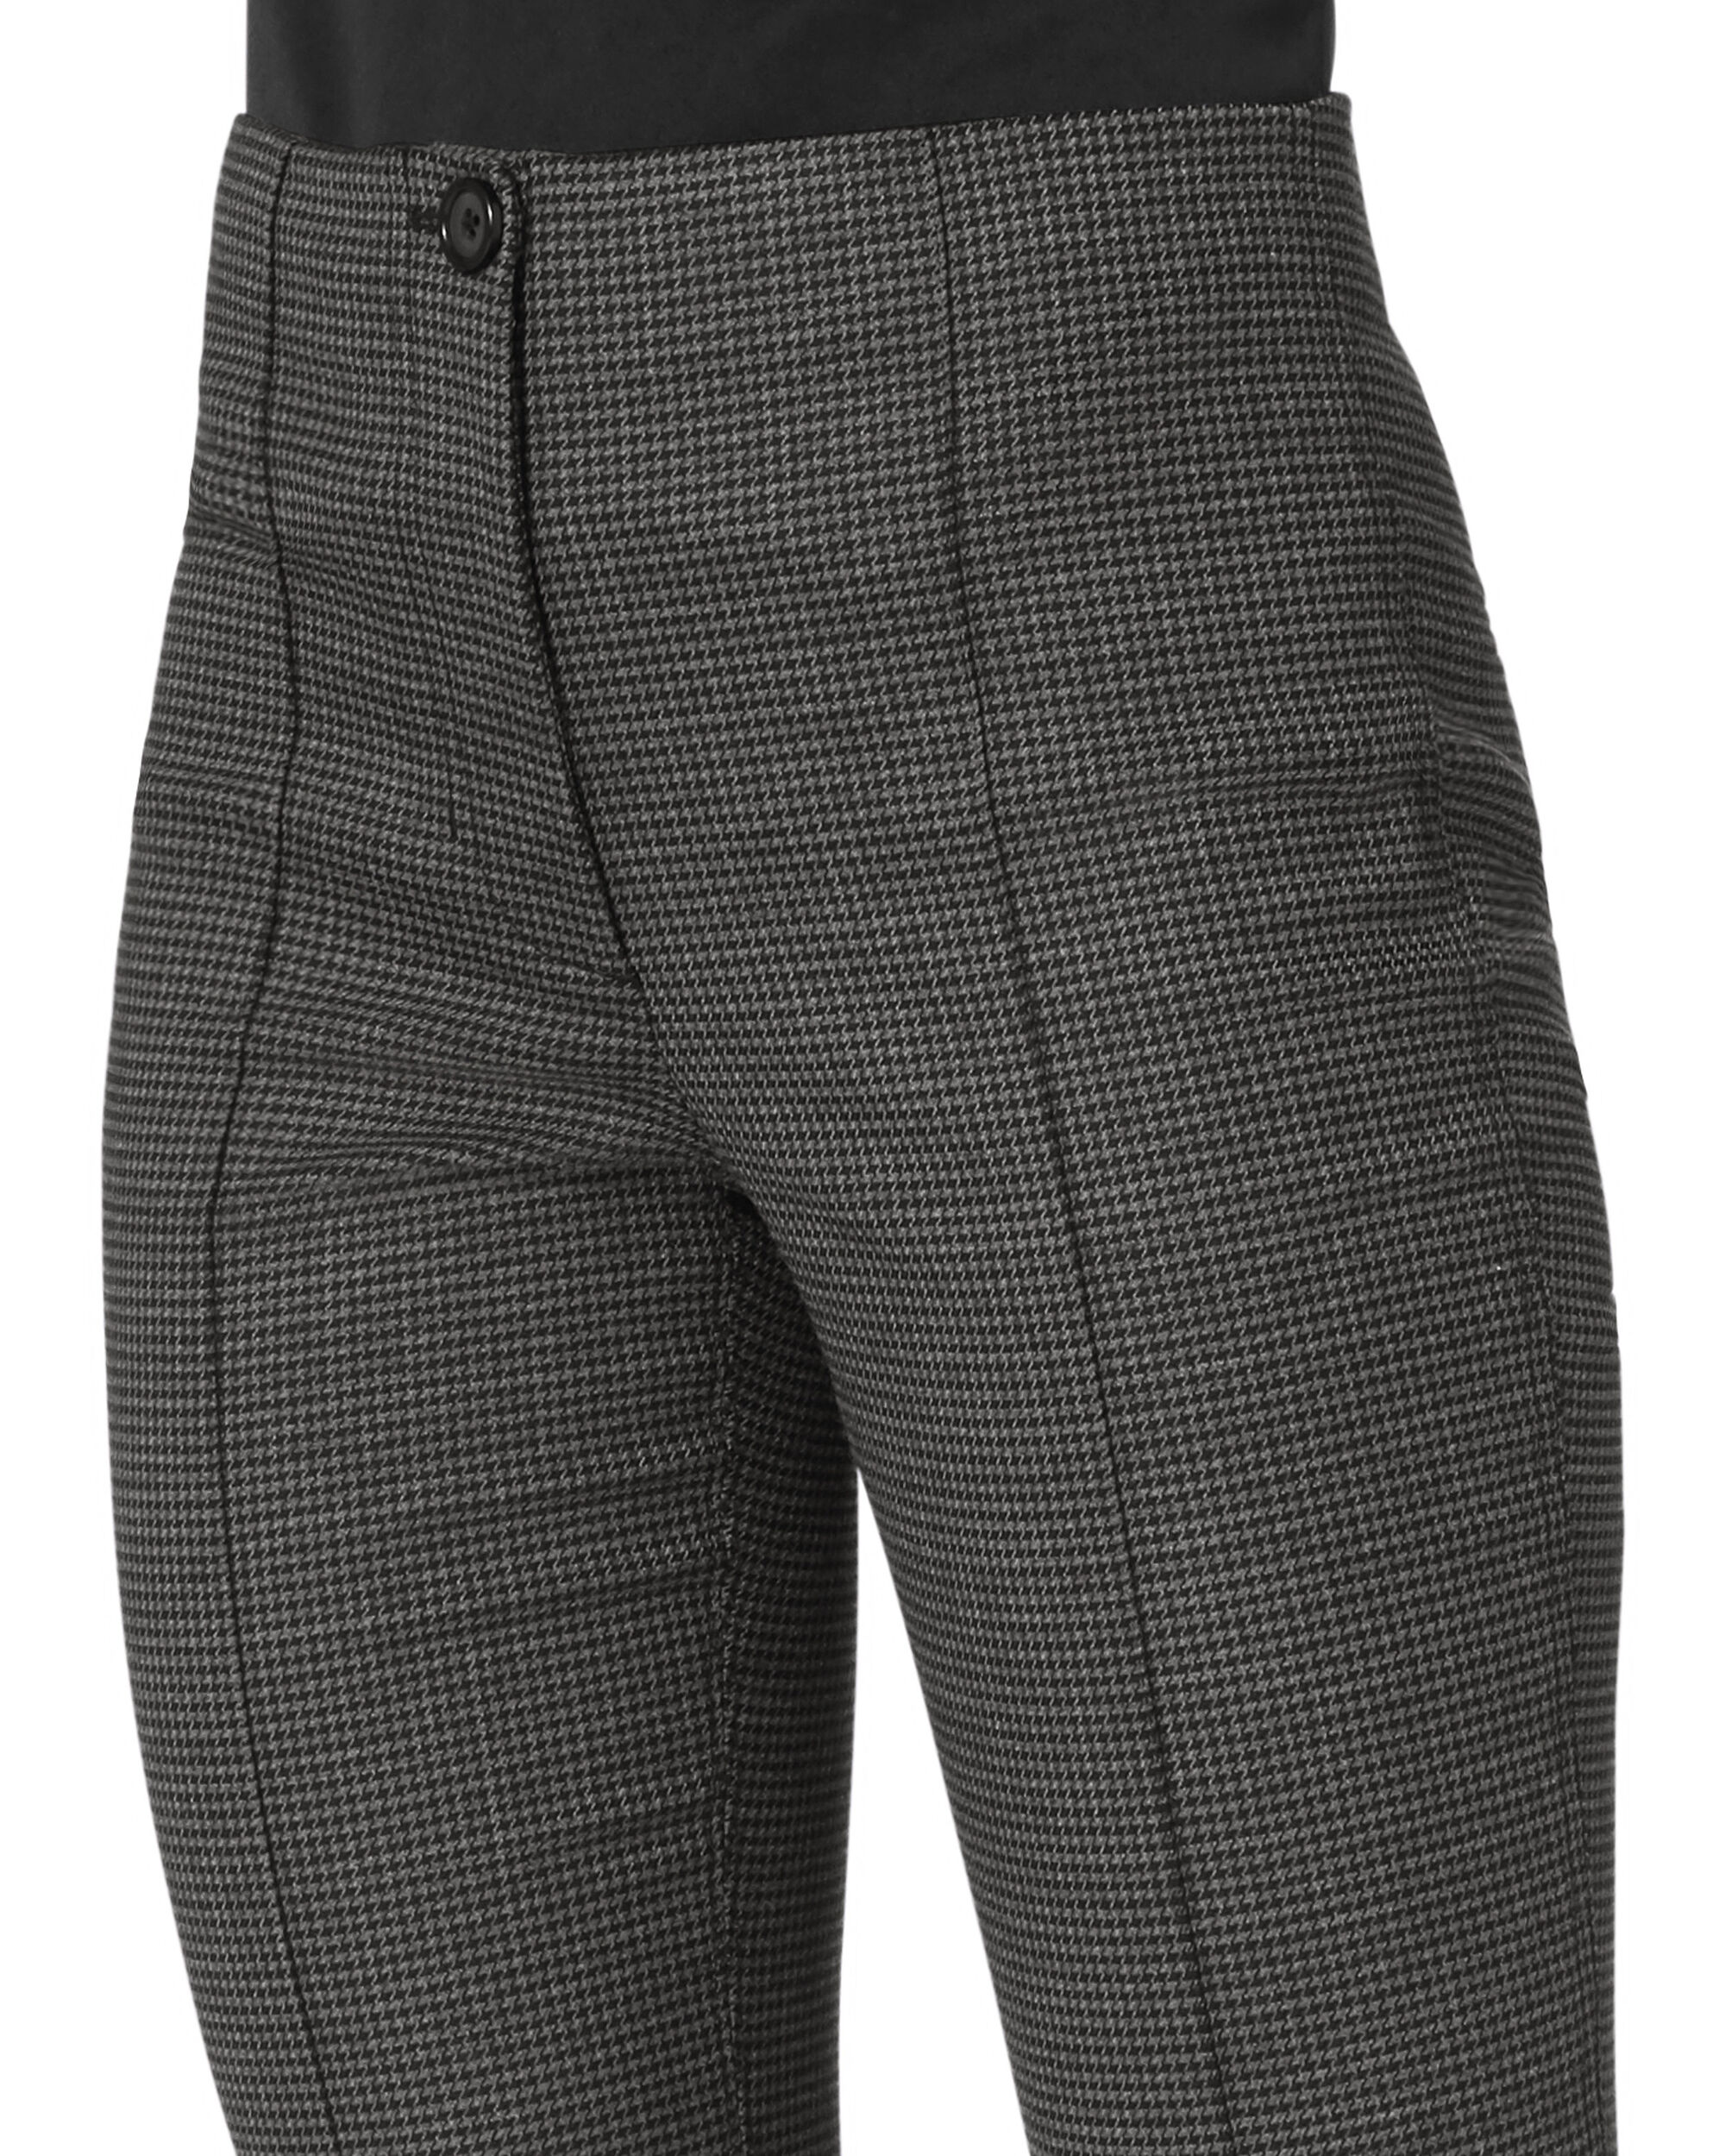 Grey Houndstooth Cropped Flare Pants, GREY, hi-res